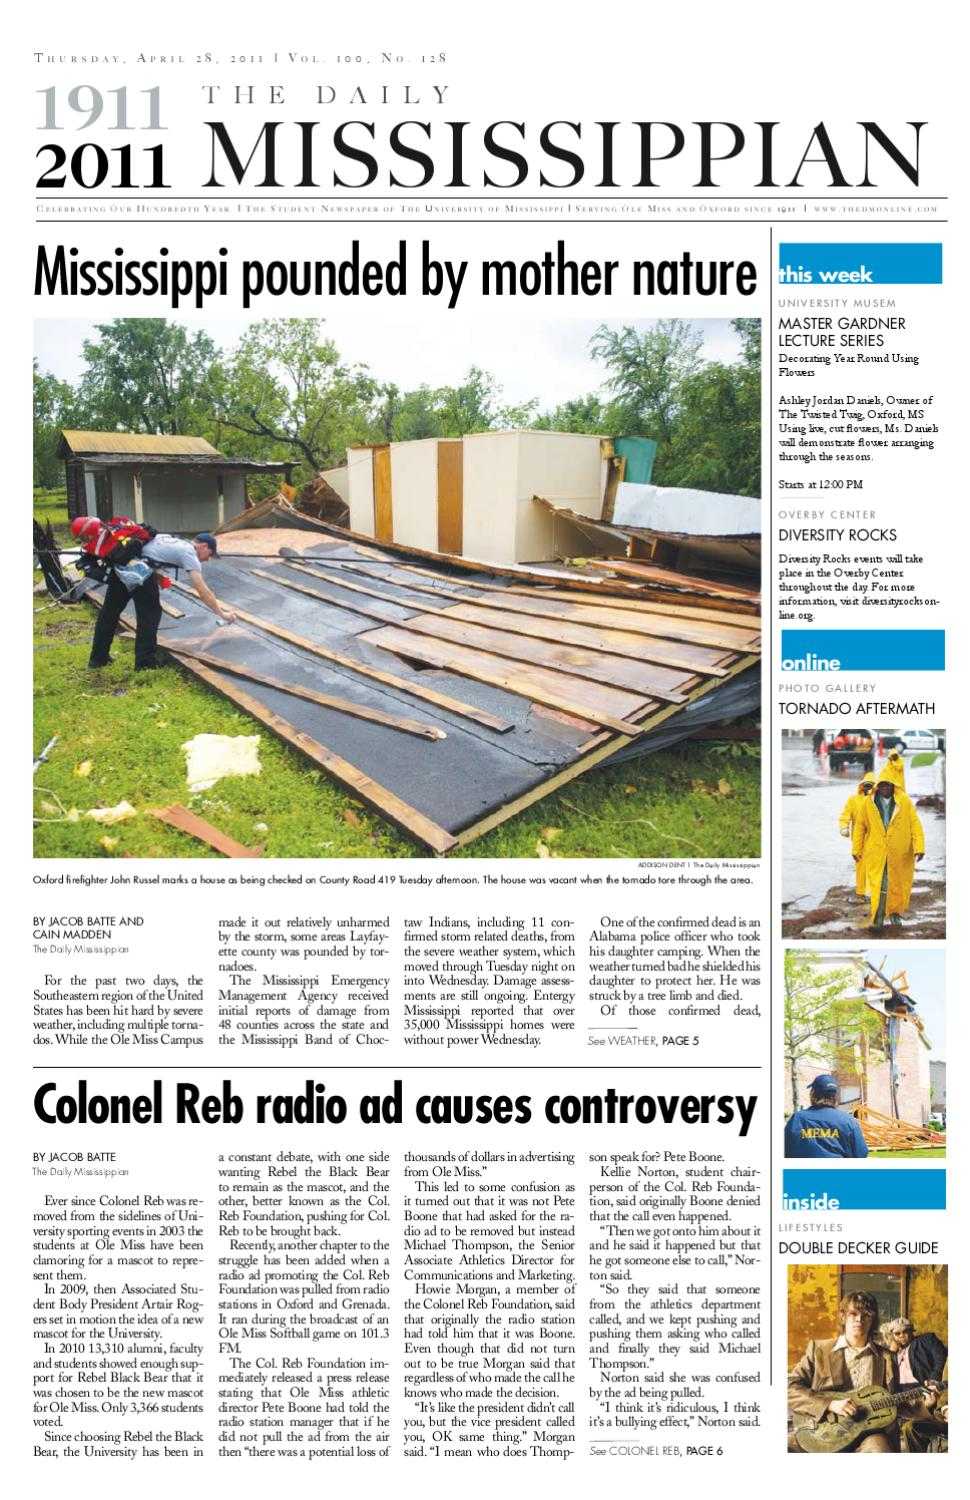 The Daily Mississippian - April 28, 2011 by The Daily